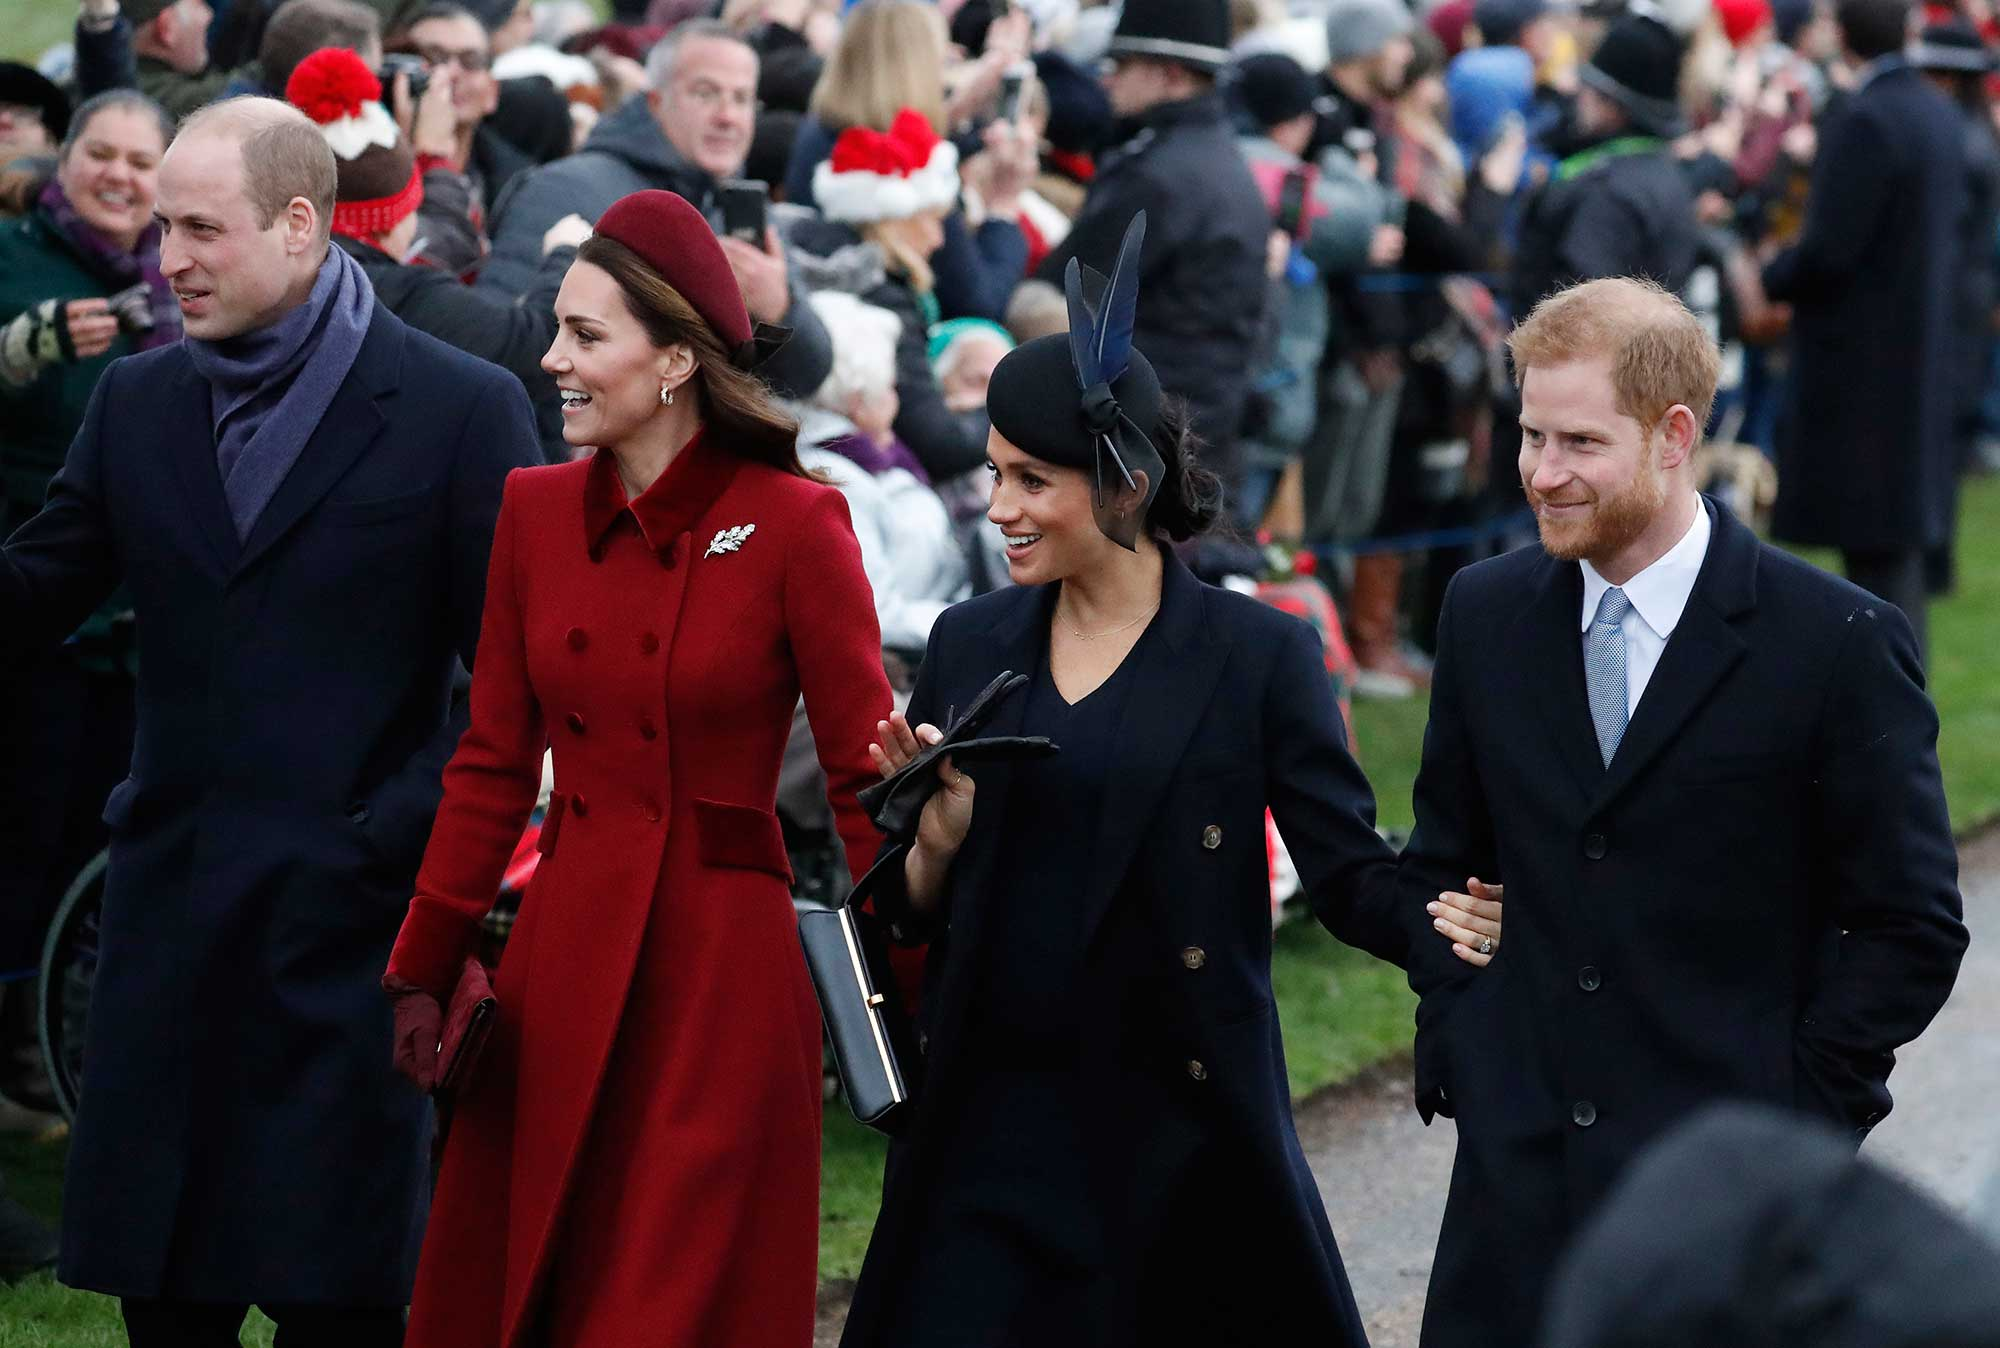 <div class='meta'><div class='origin-logo' data-origin='none'></div><span class='caption-text' data-credit='Frank Augstein/AP Photo'>Prince William, Kate, Duchess of Cambridge, s Meghan Duchess of Sussex and Prince Harry, arrive at the Christmas day service at St Mary Magdalene Church on Dec. 25, 2018.</span></div>